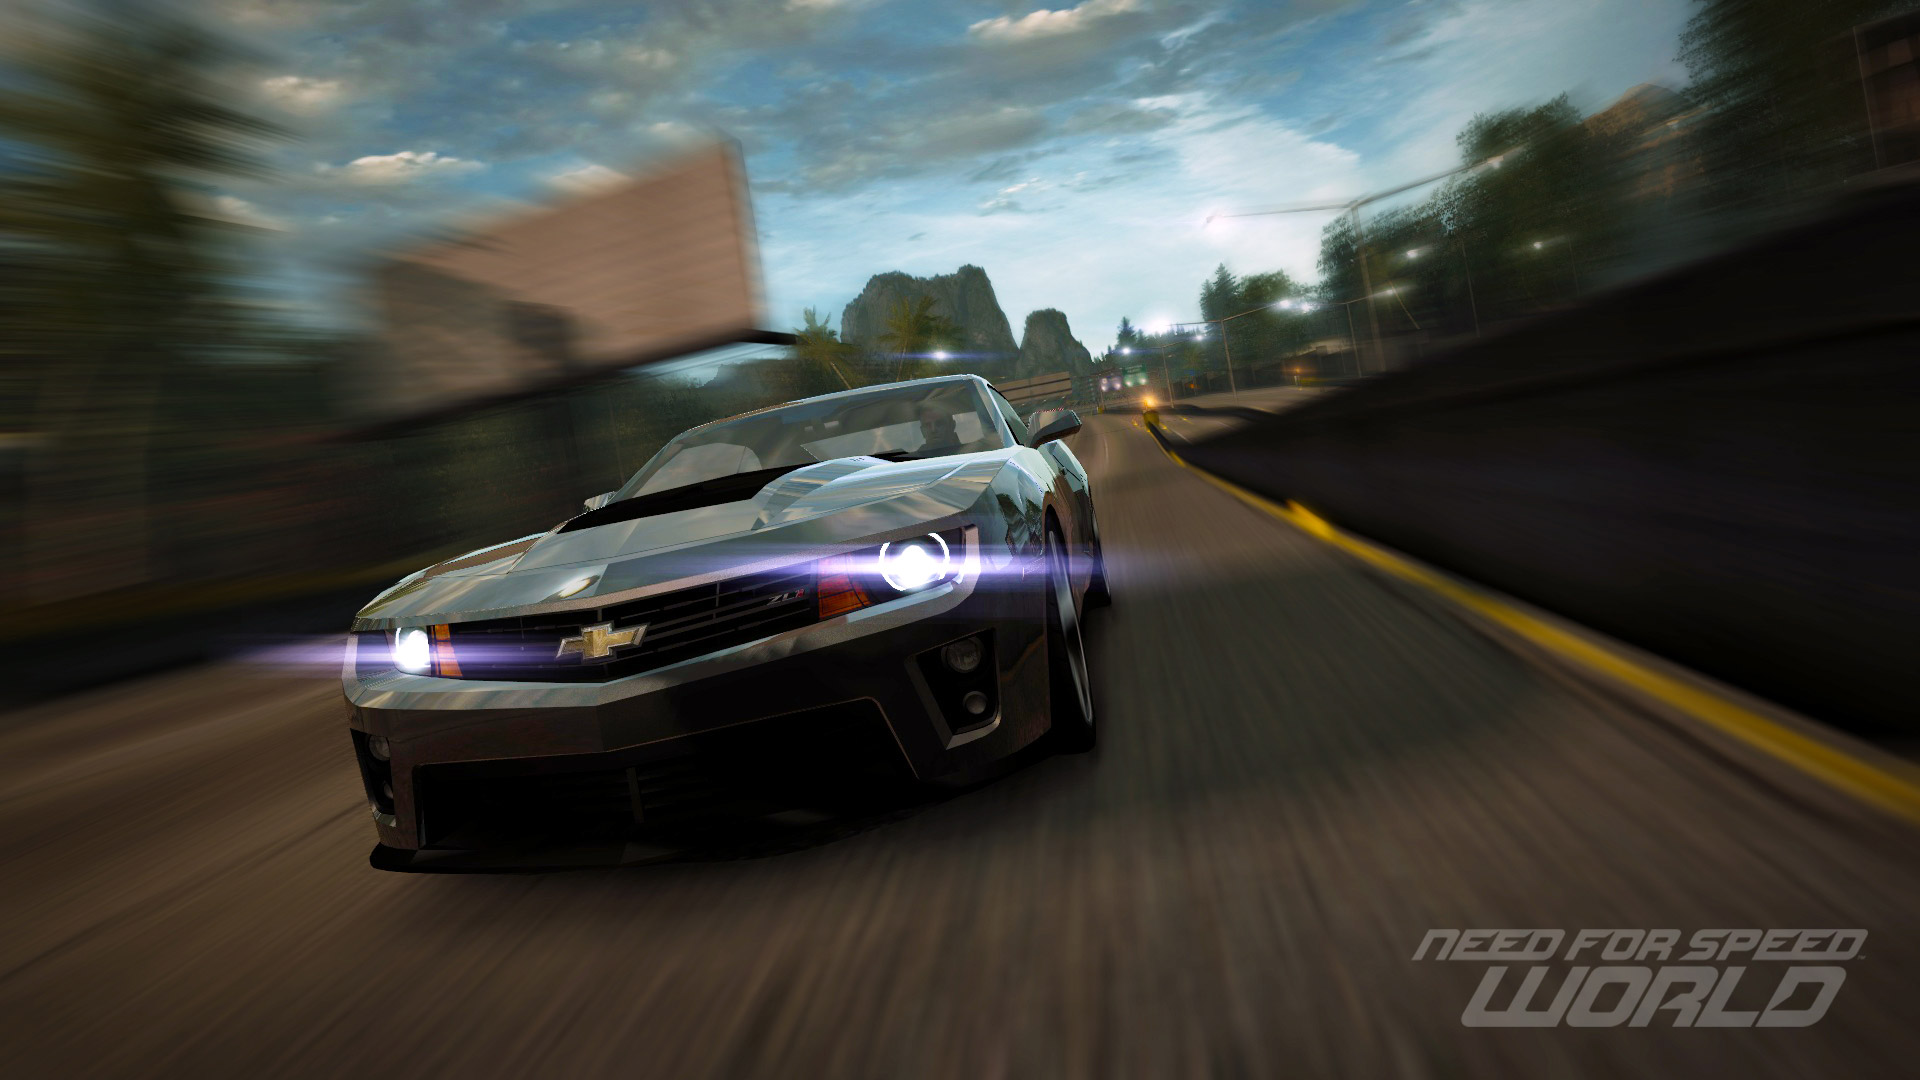 Free Need for Speed: World Wallpaper in 1920x1080